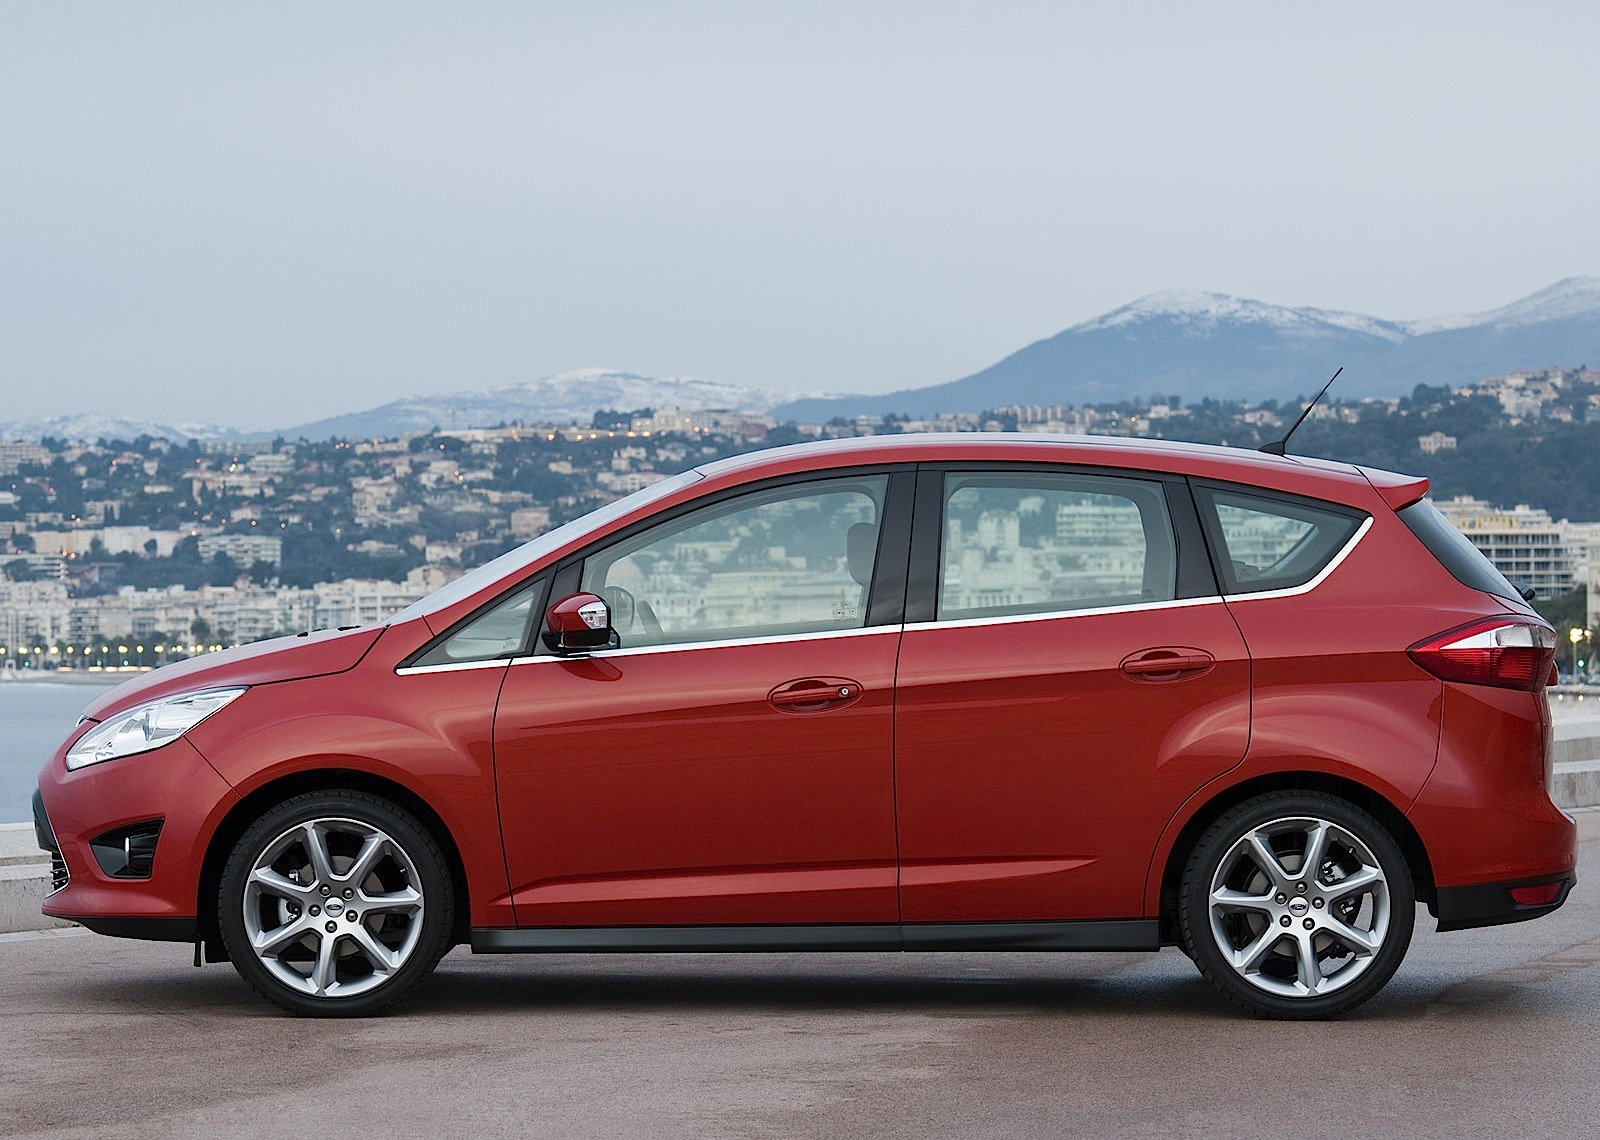 2010 Ford C-Max #26